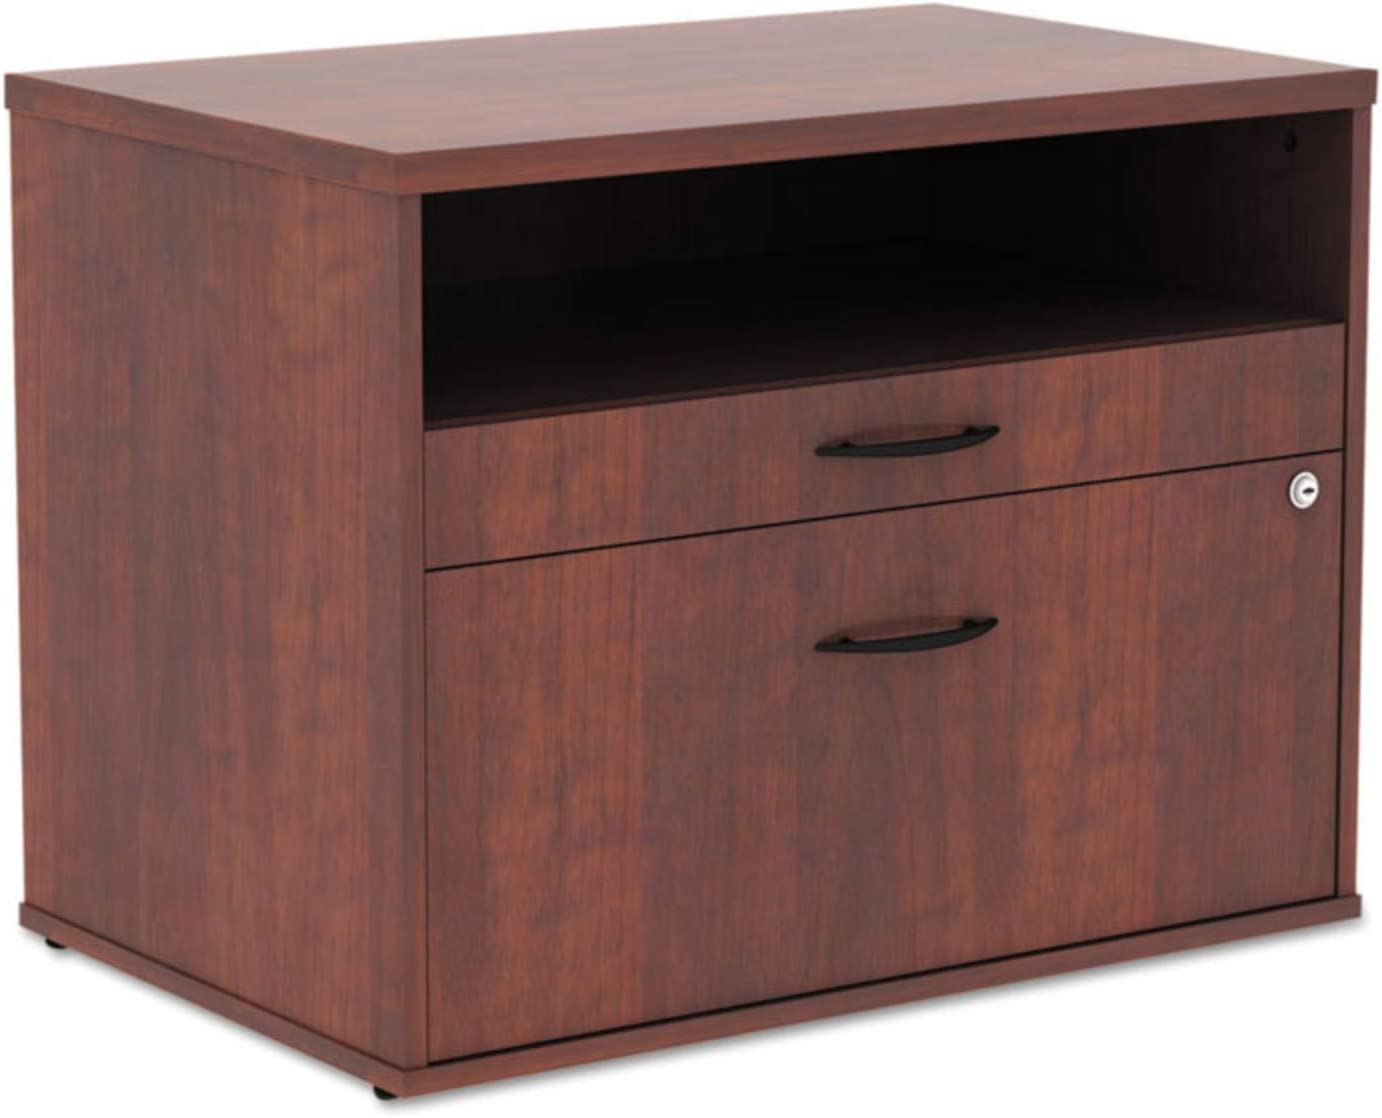 Alera LS583020MC Open Office Series Low File Cab Cred, 29 1/2x19 1/8x22 7/8, Med. Cherry